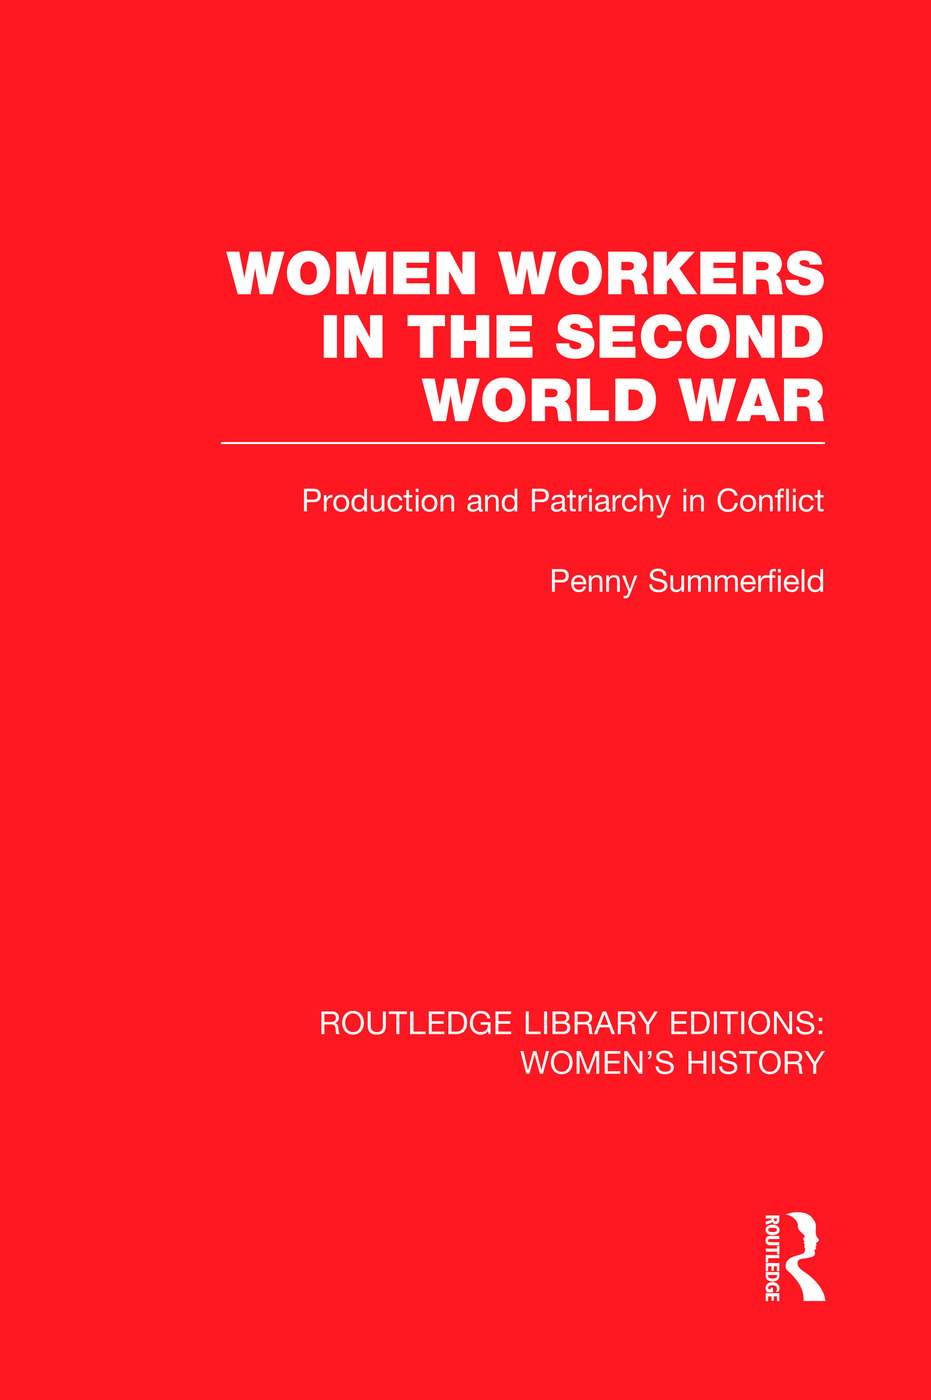 Women Workers in the Second World War: Production and Patriarchy in Conflict book cover